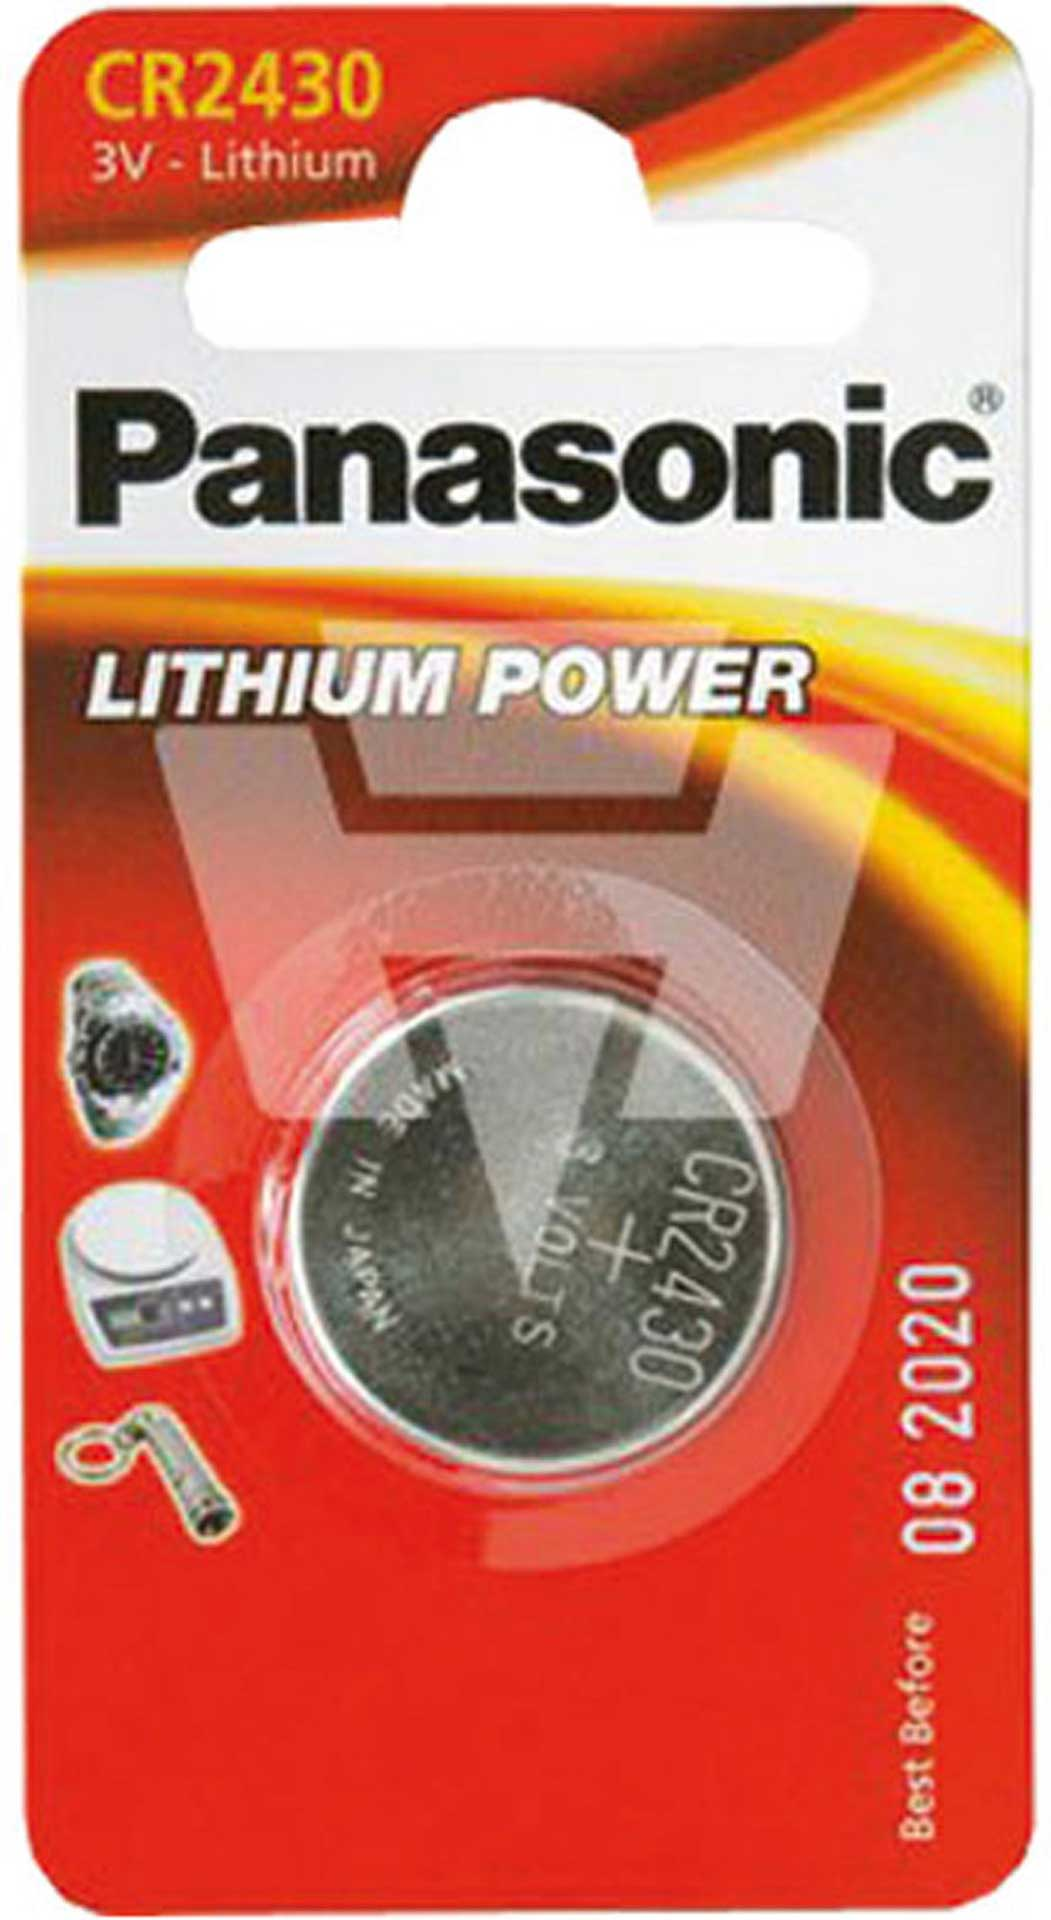 PANASONIC LITHIUM BUTTON CELL BATTERY CR2430 3V 1 PCS